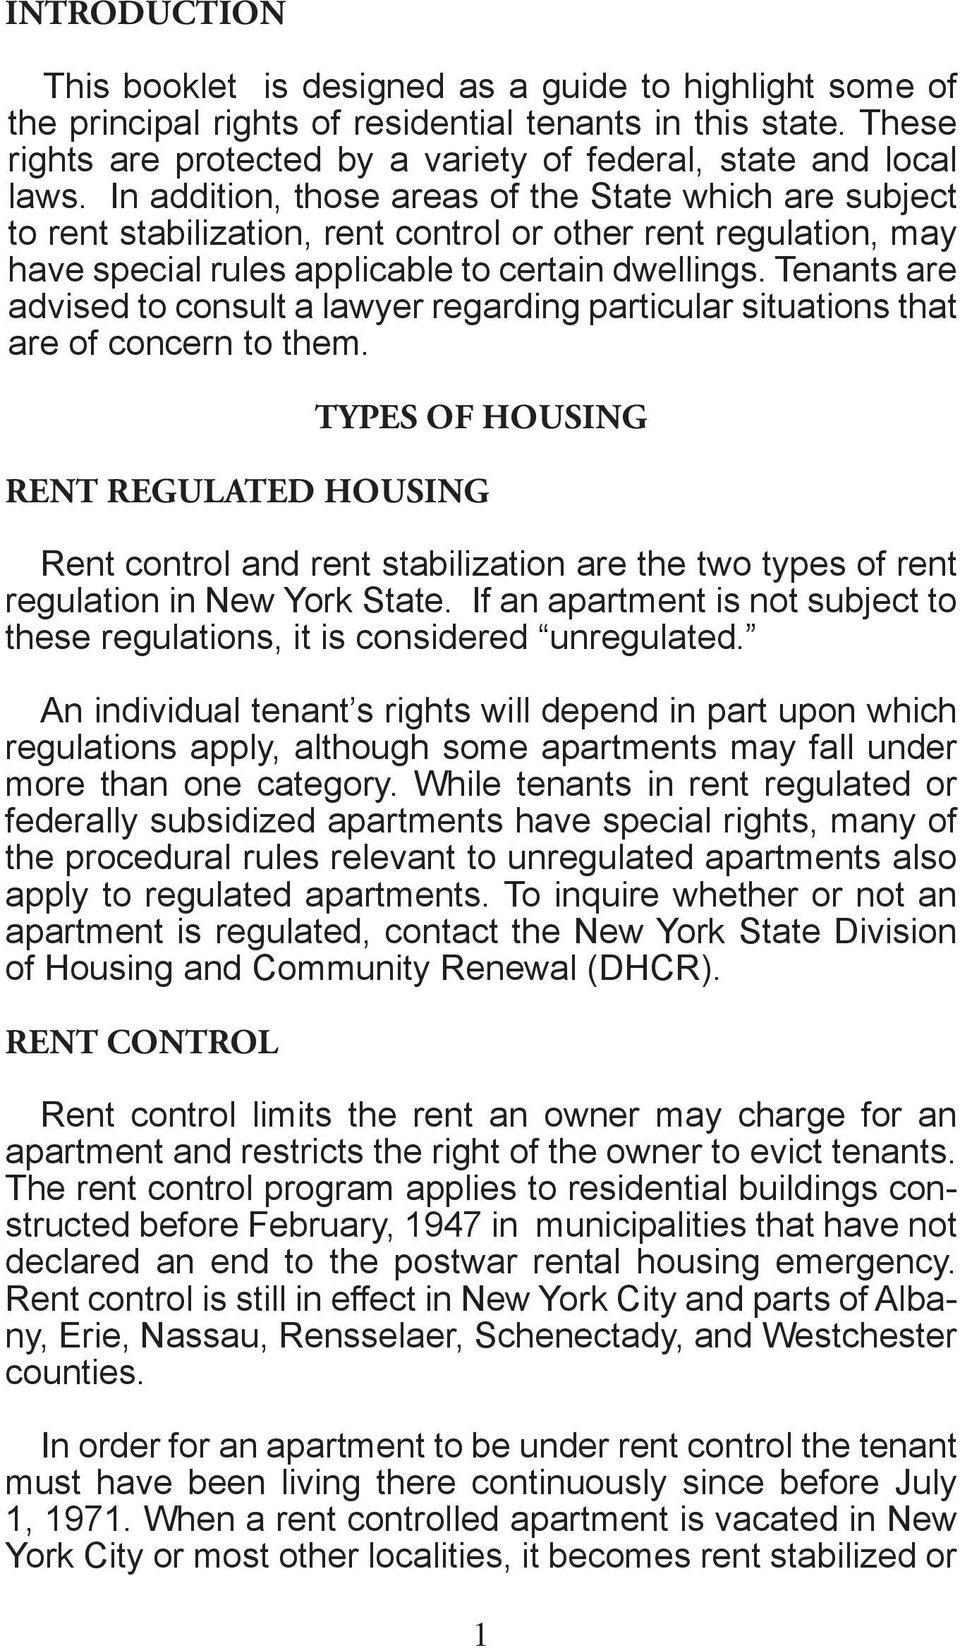 In addition, those areas of the State which are subject to rent stabilization, rent control or other rent regulation, may have special rules applicable to certain dwellings.